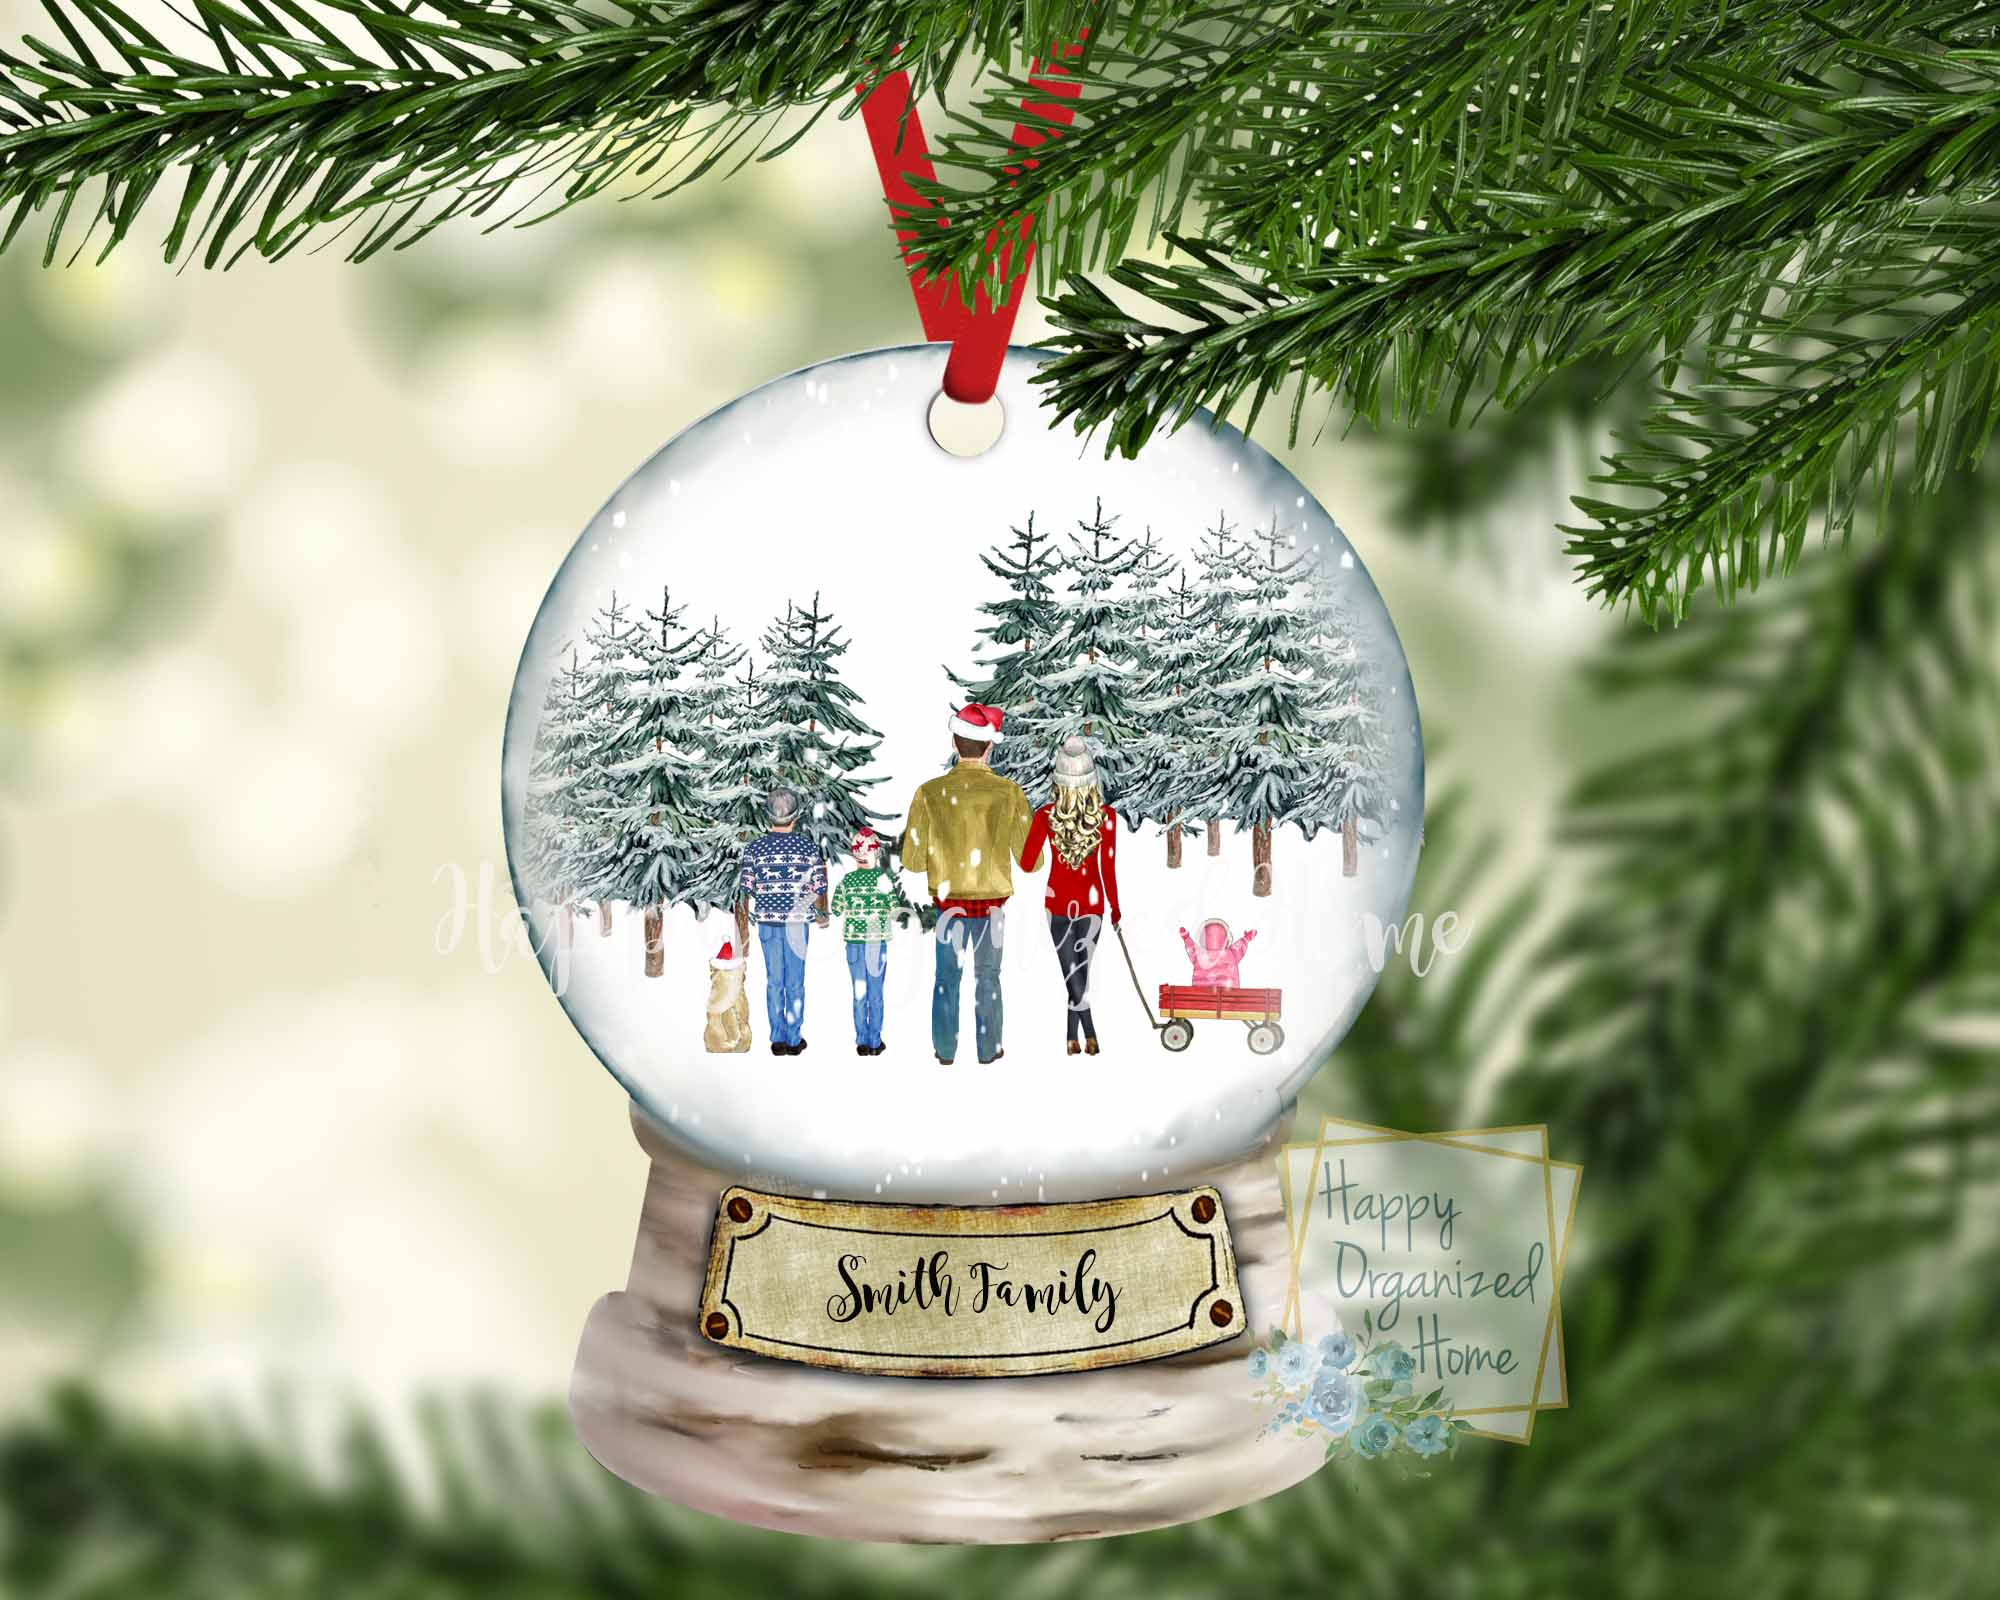 Snow globe Christmas Family ornament - Customized and includes pets